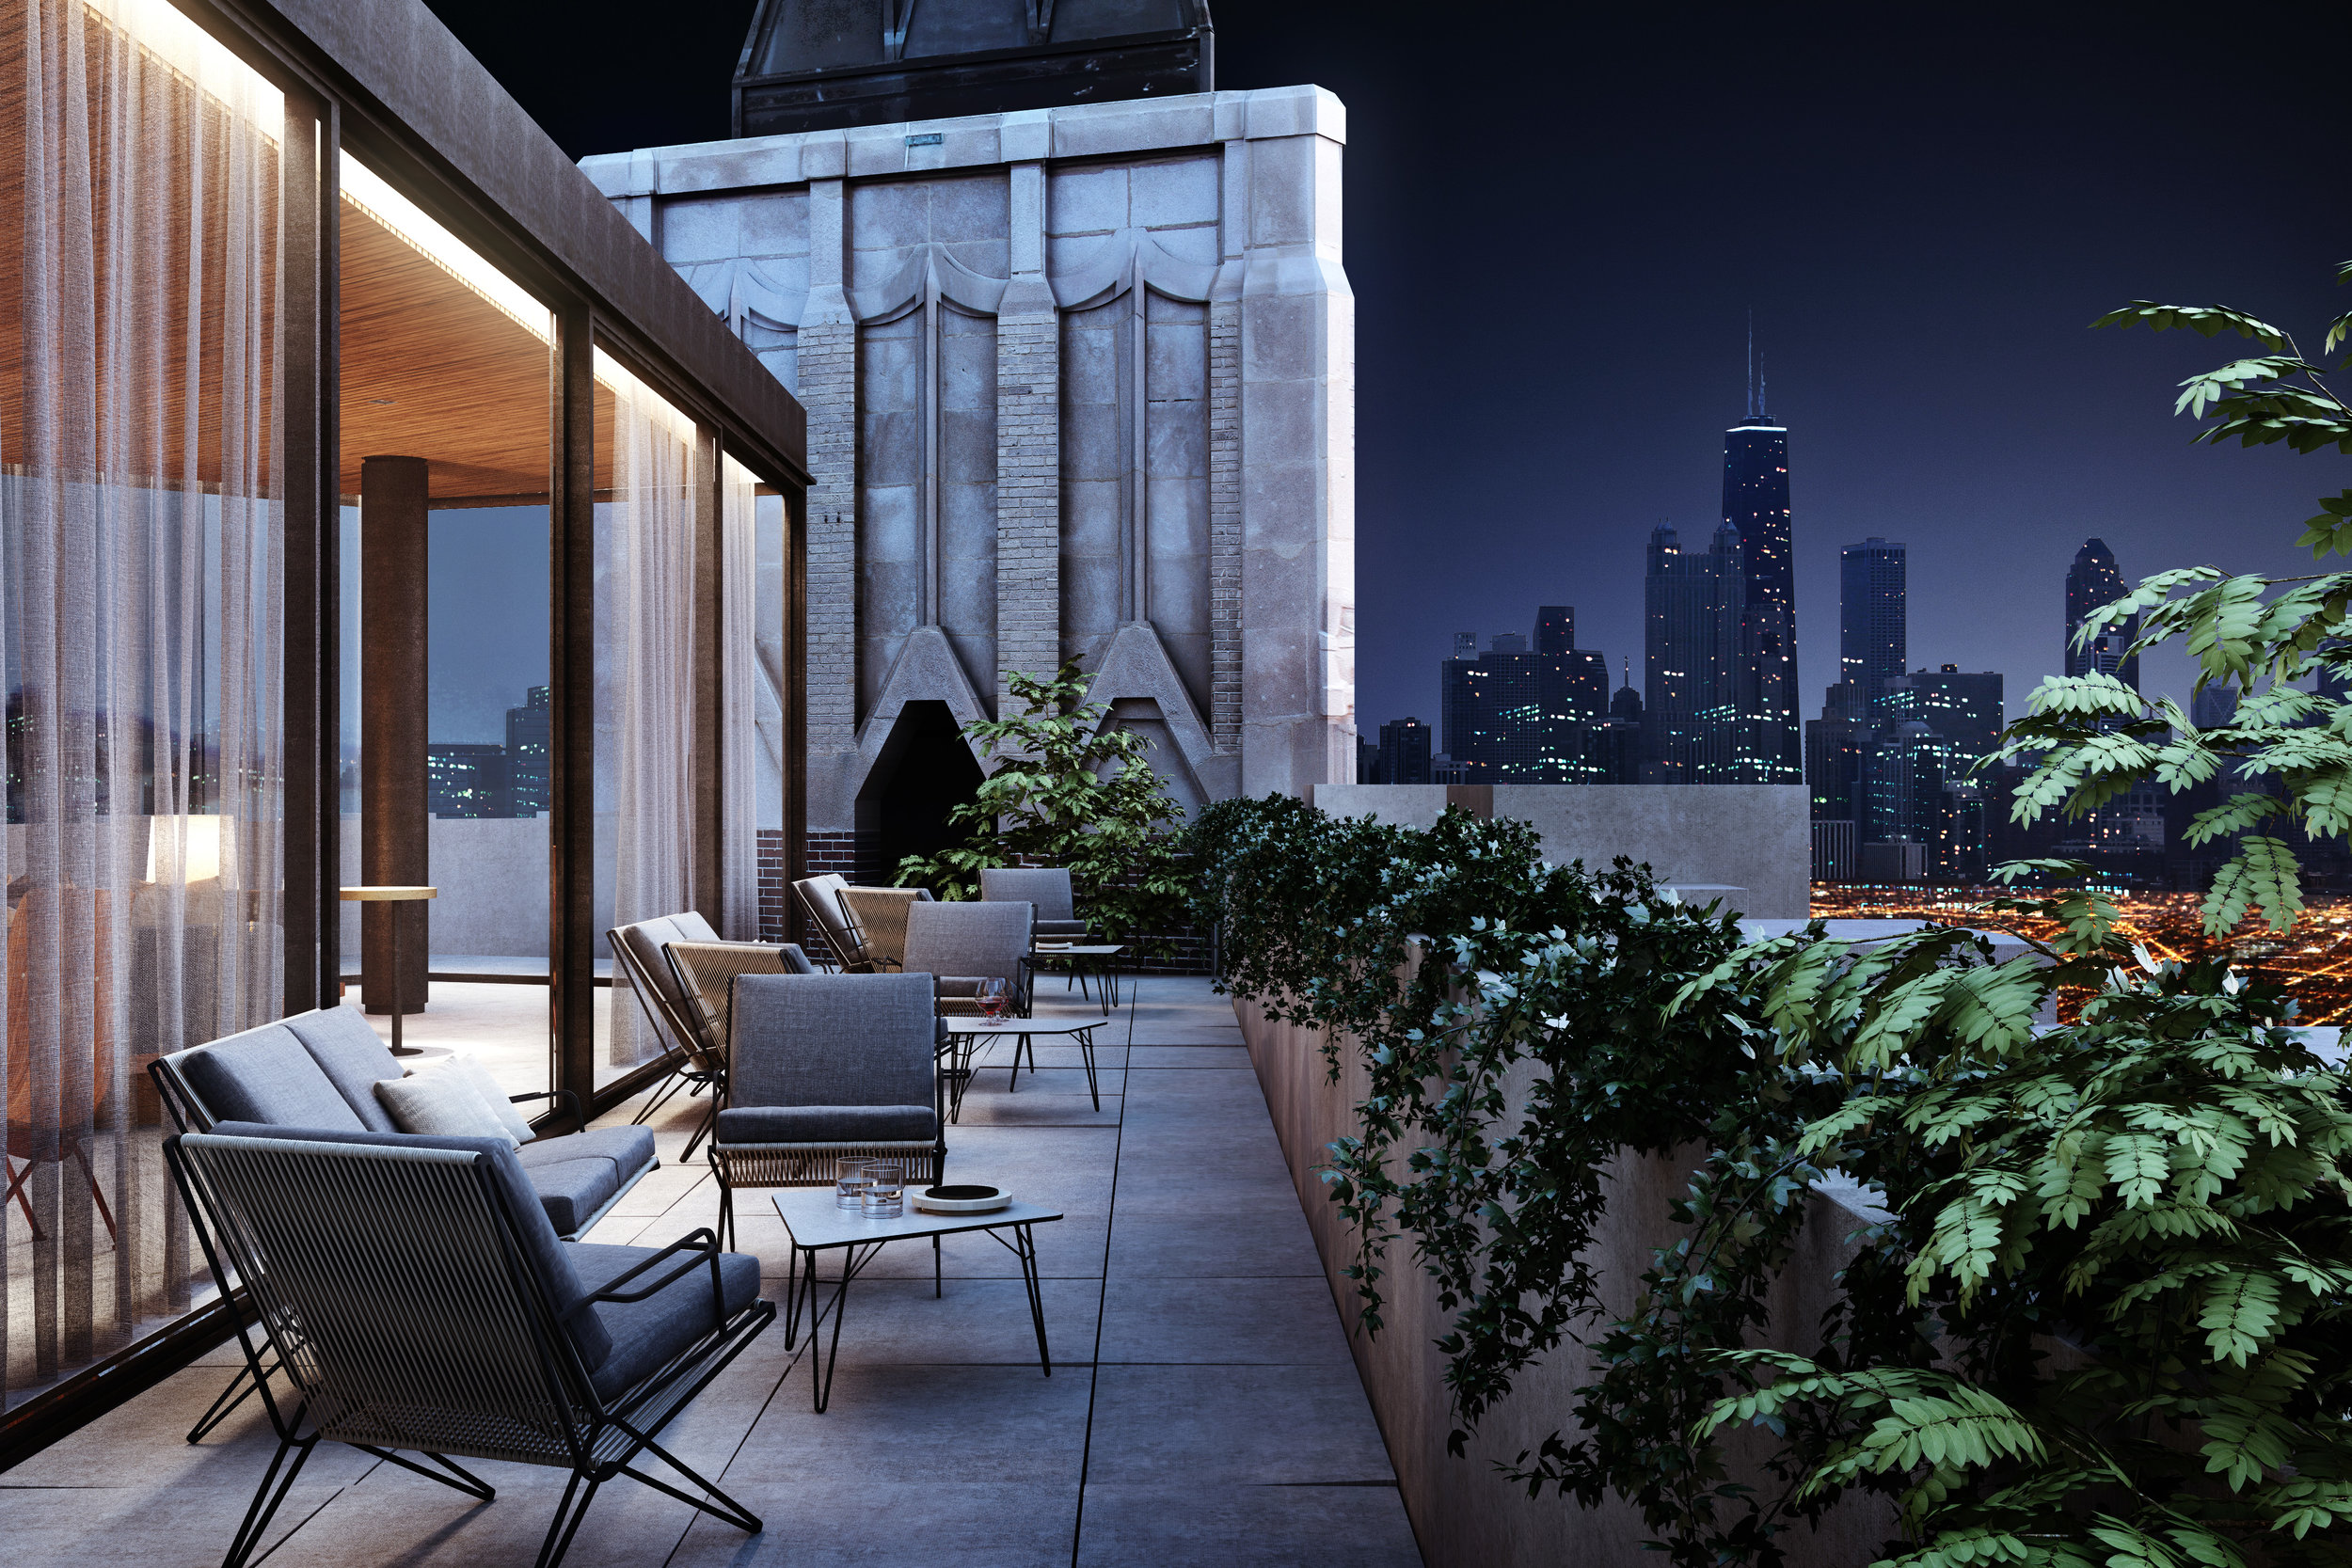 They Robey Hotel, Chicago - Vip Rooftop Terrace - Up & Up - Marc Merckx Interiors